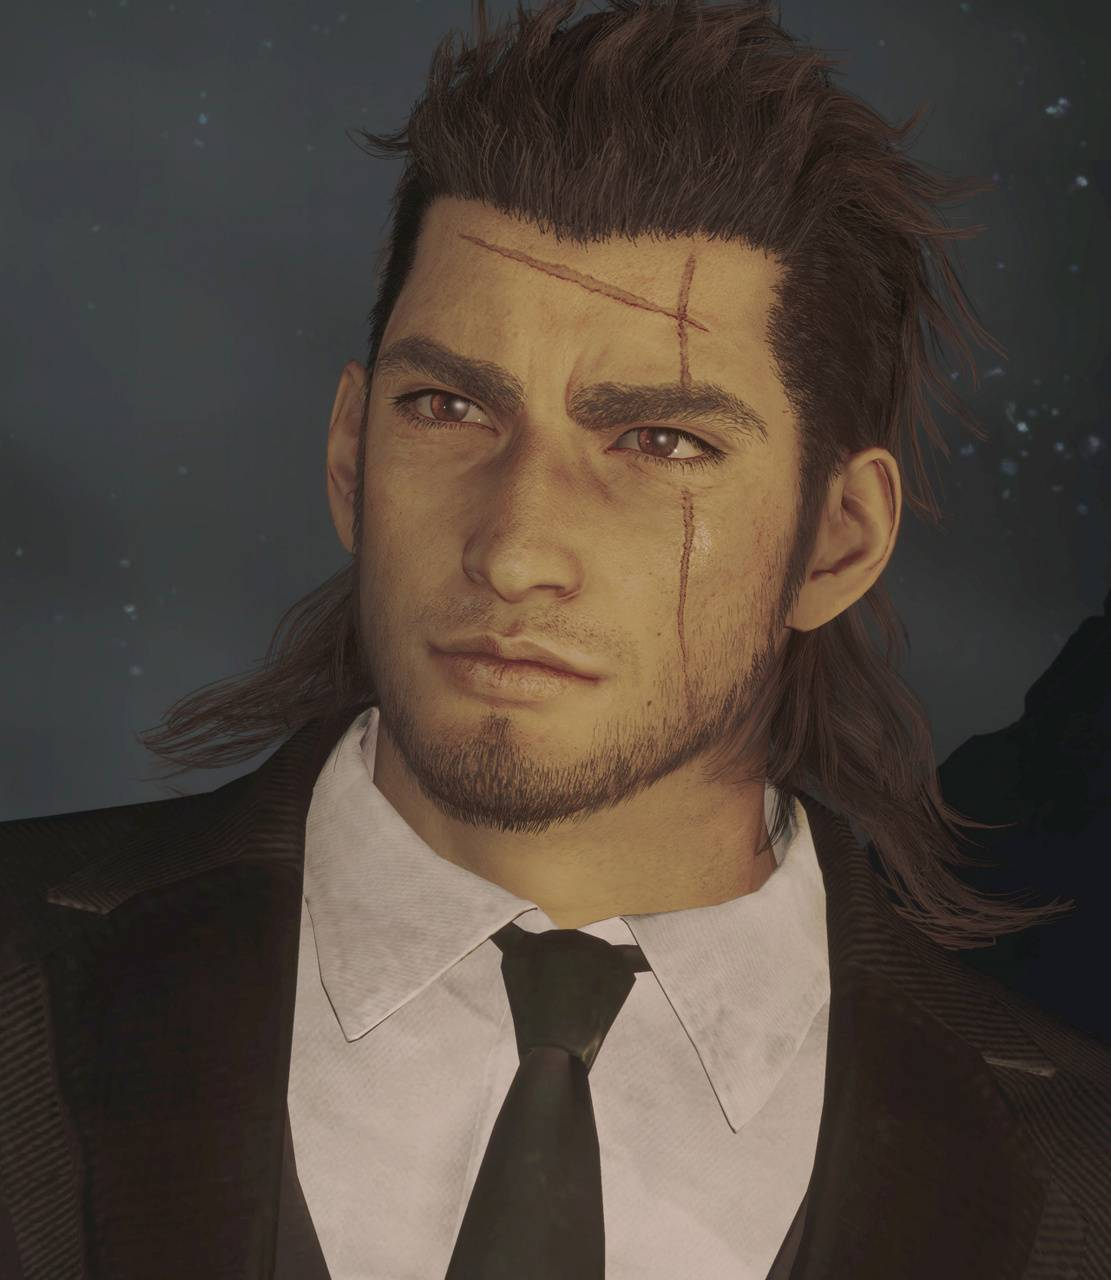 Gladiolus on a suit